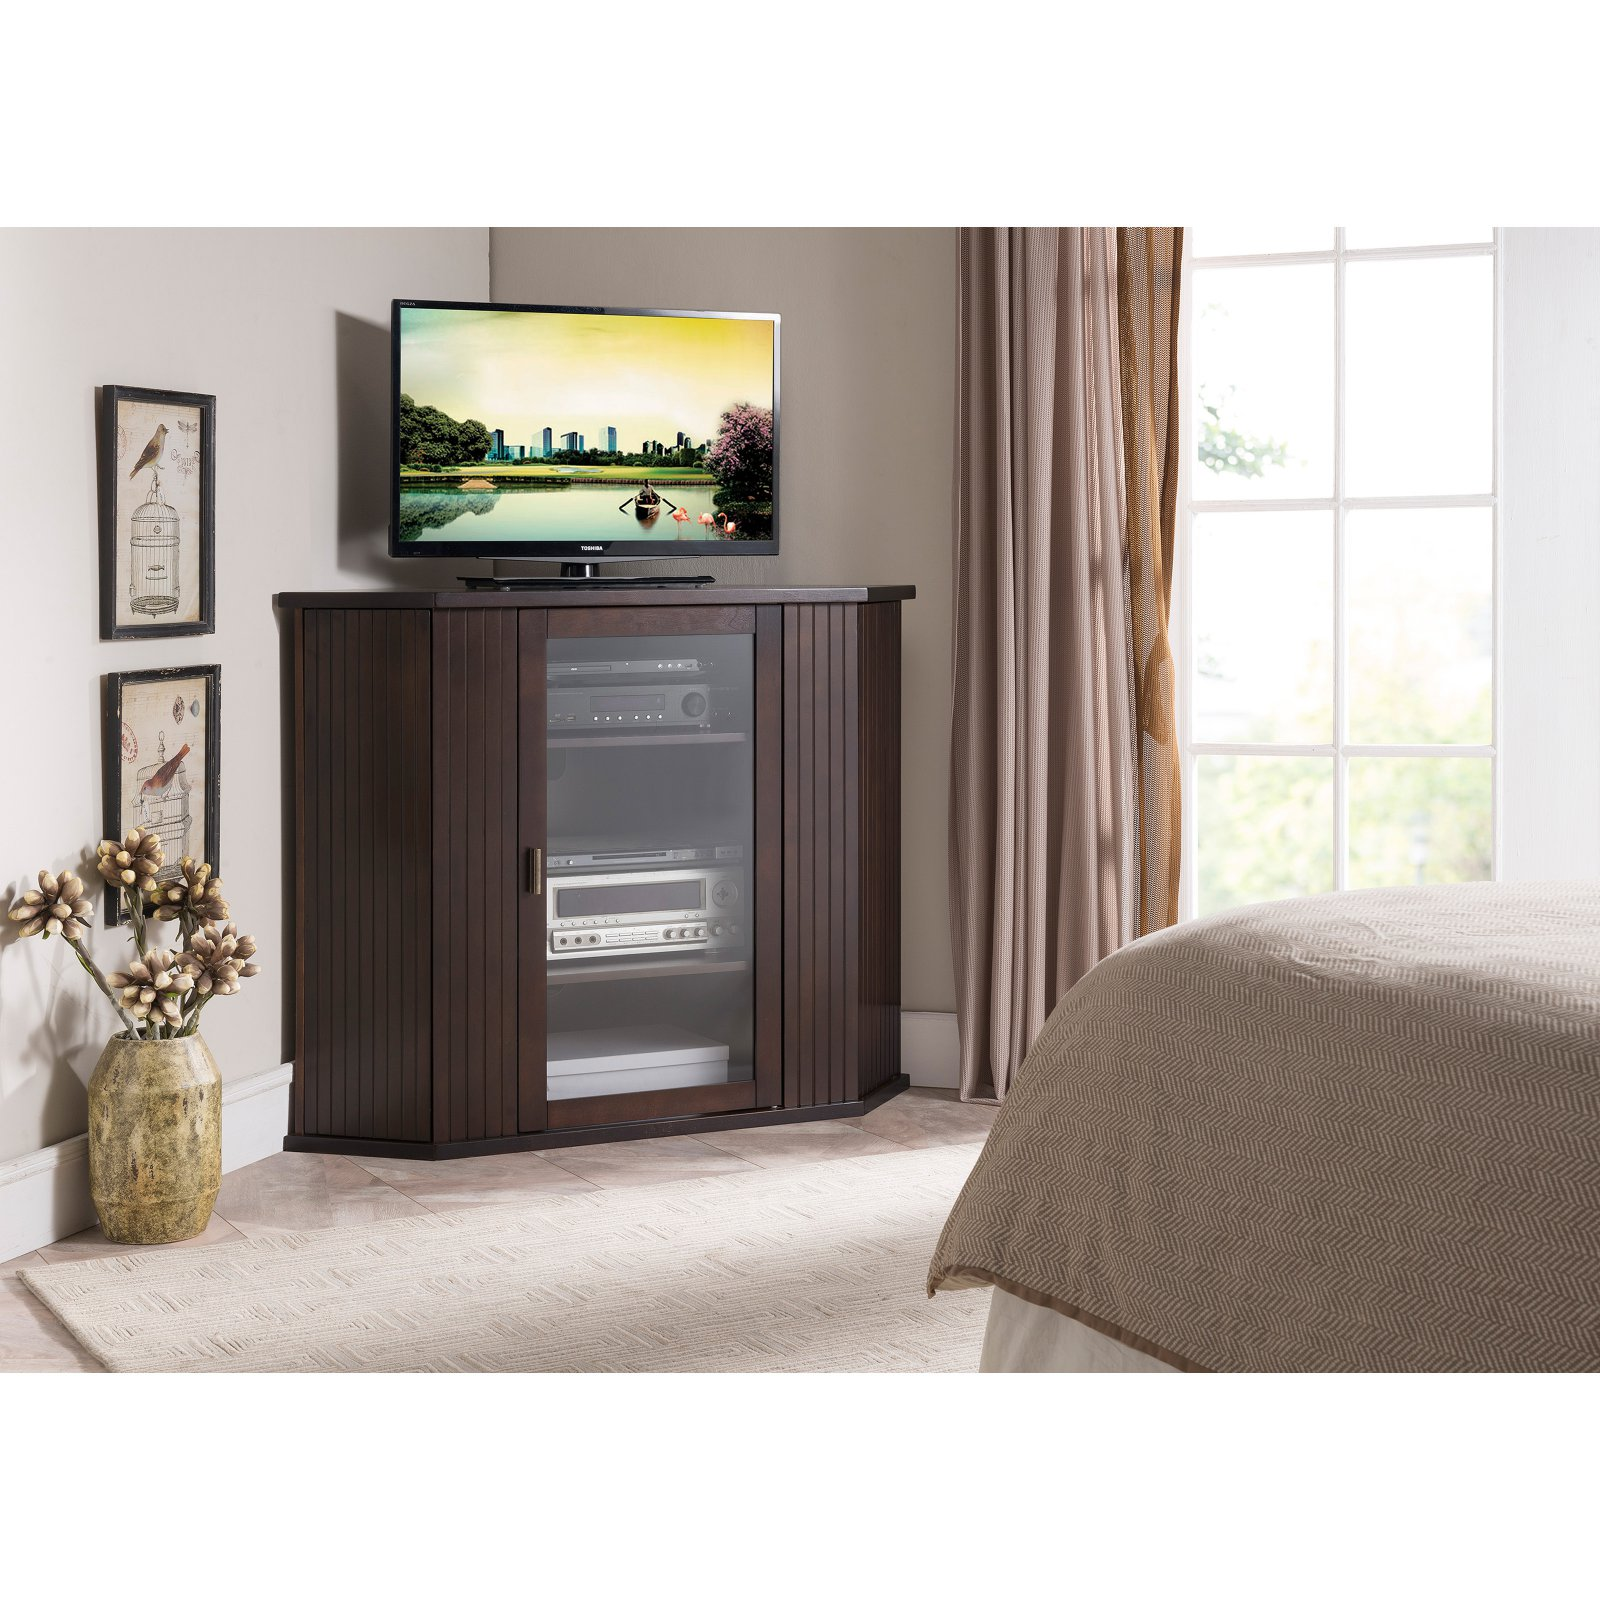 K&B Furniture E4820 47 in. Wood Corner TV/Entertainment Center